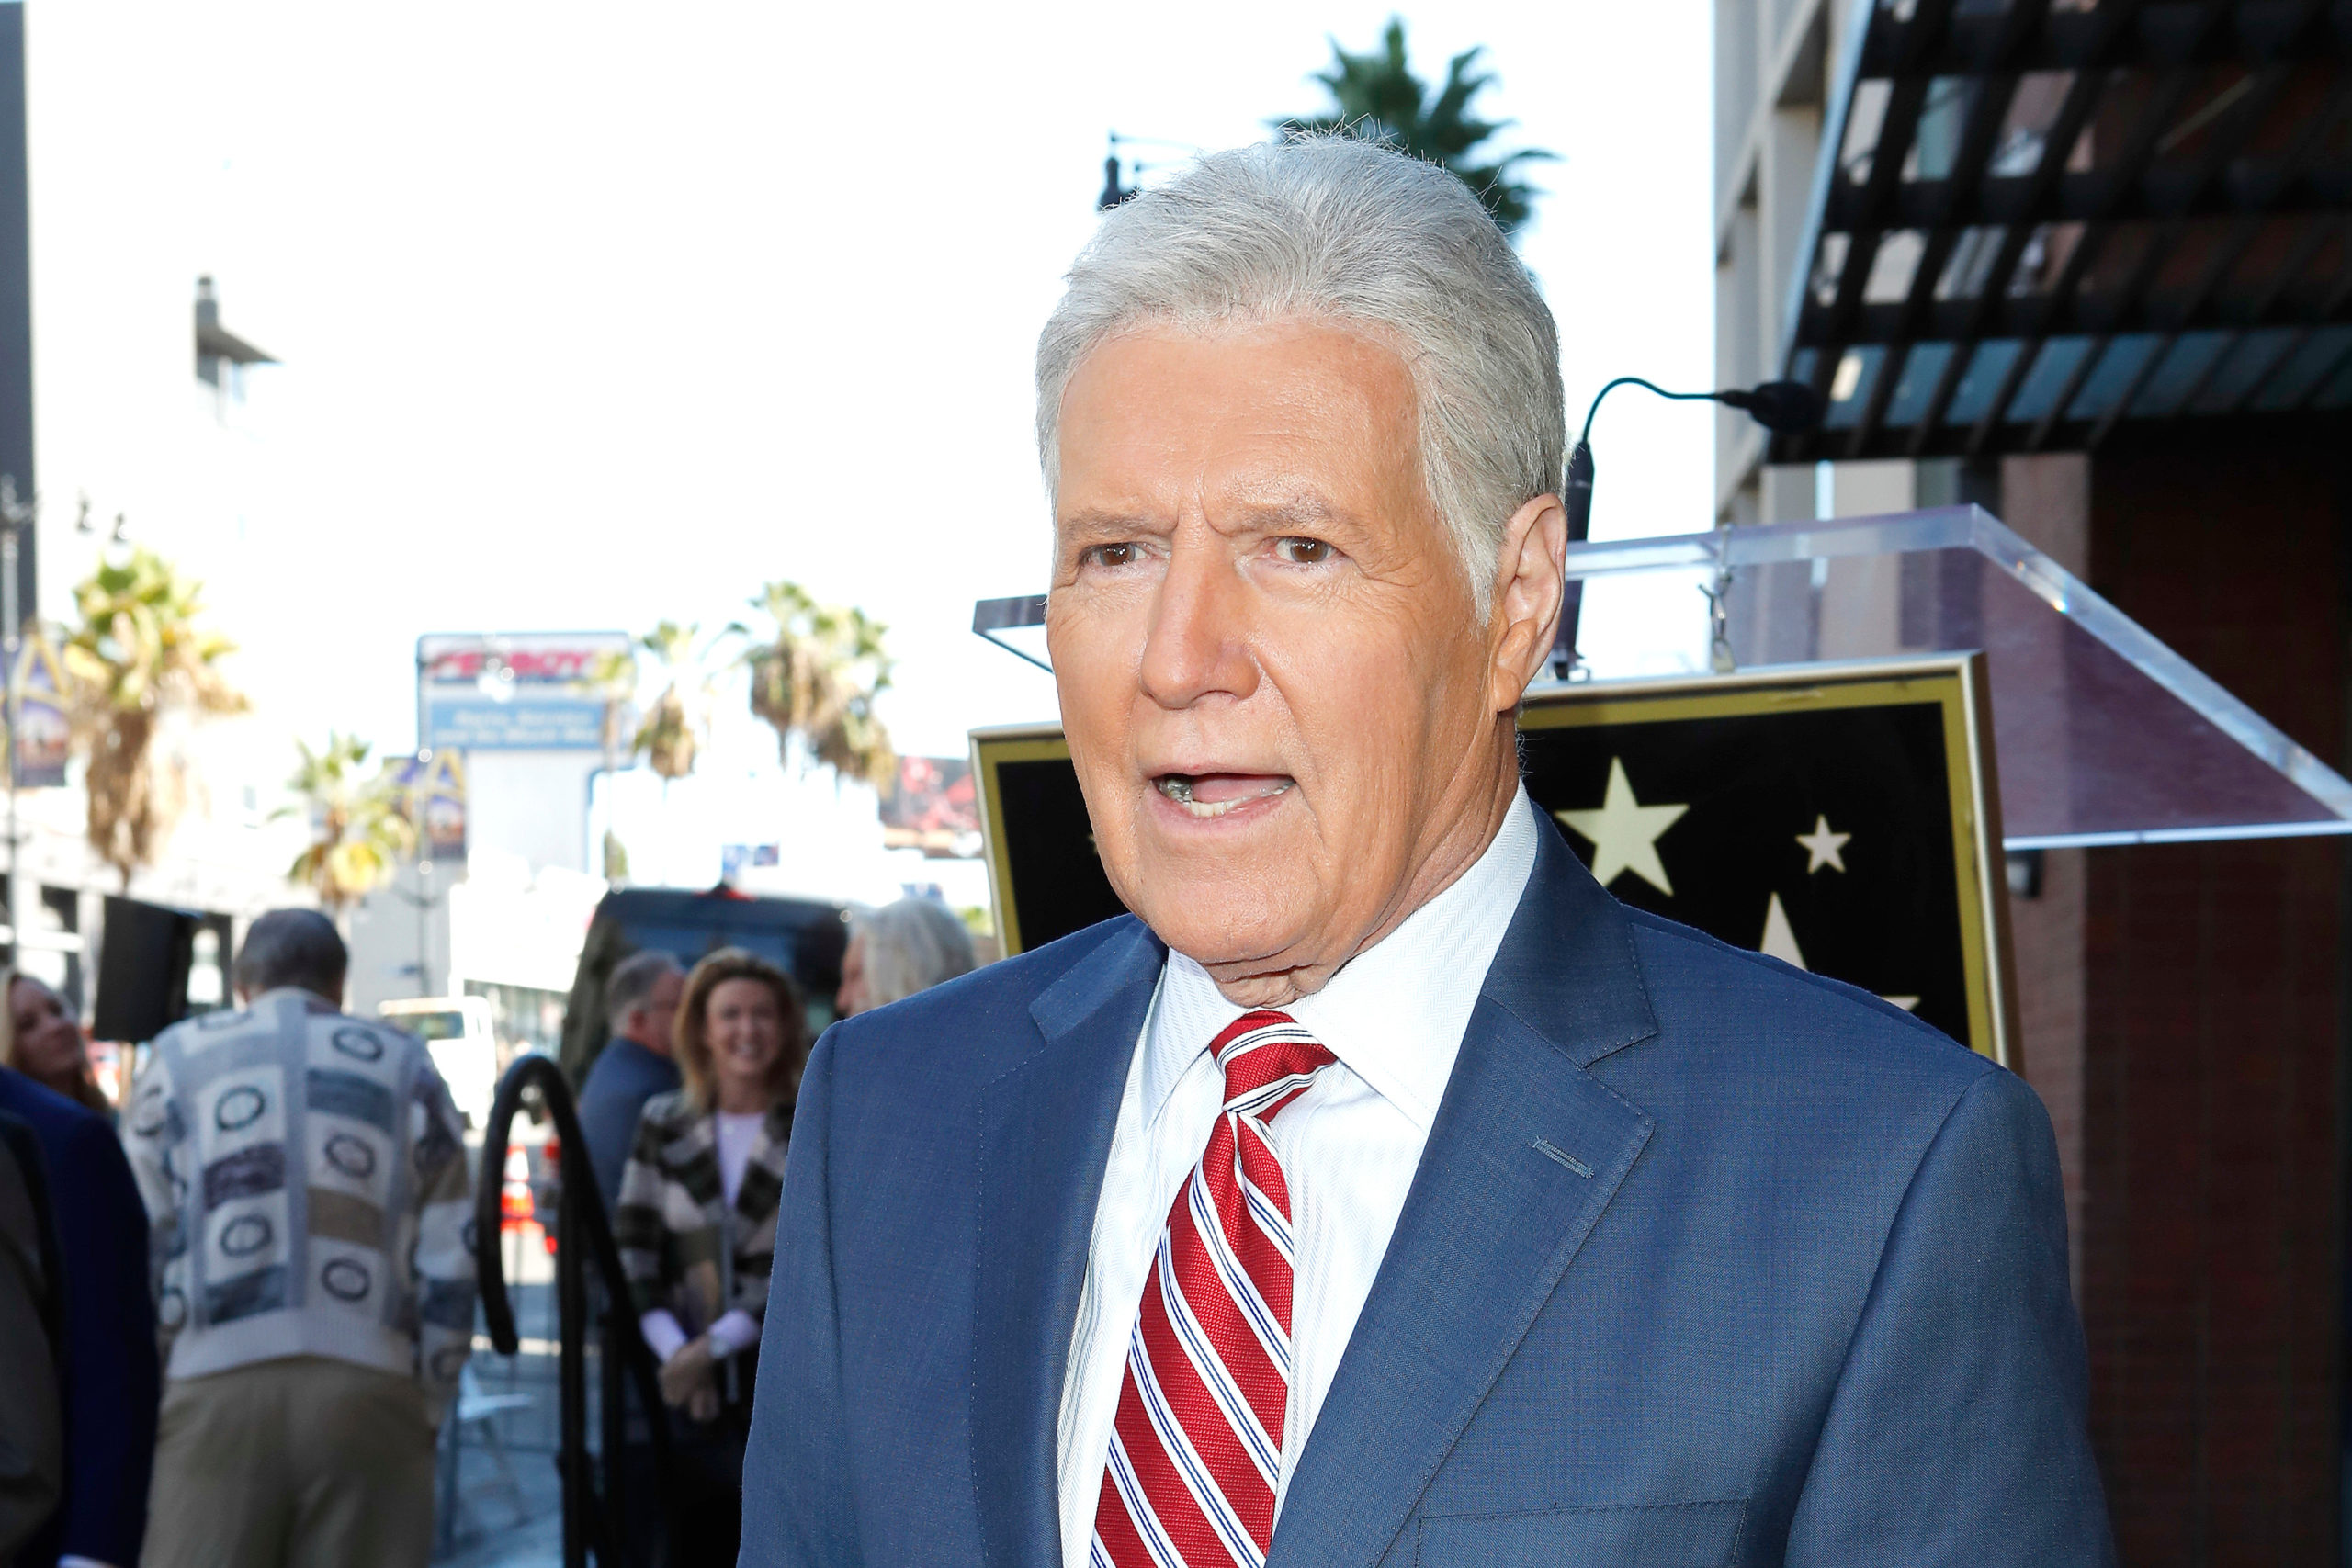 Late Jeopardy! Host Alex Trebek's Wardrobe to Be Donated to Homeless Organization For Interviews